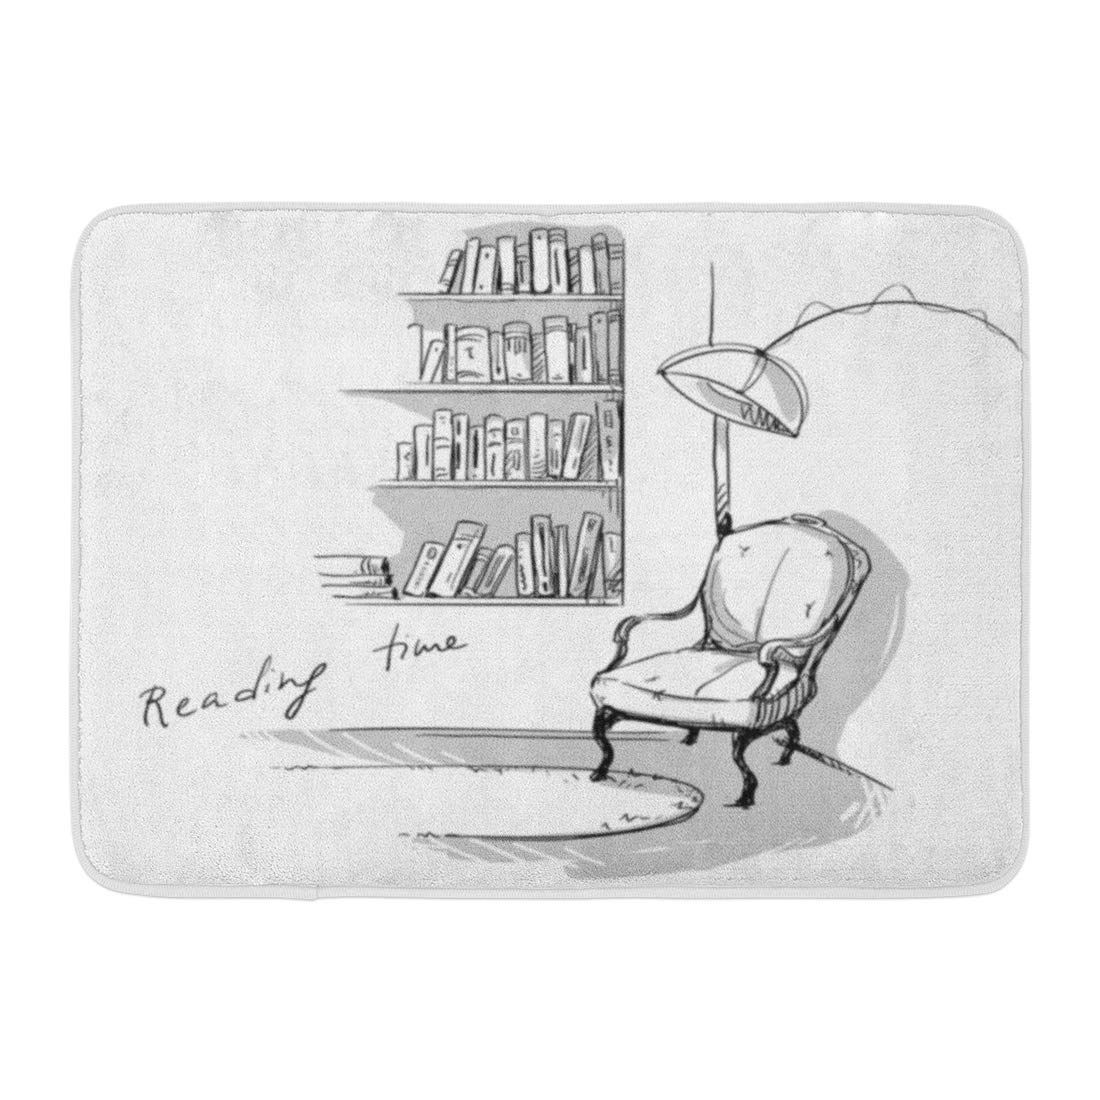 Furniture Black Sketch Reading Time Quiet Cozy Corner At Bookshelves And Chair White Bookshelf Doodle Rug Doormat Bath Mat 23 6x15 7 Inch In 2020 White Bookshelves Cozy Corner Bookshelves